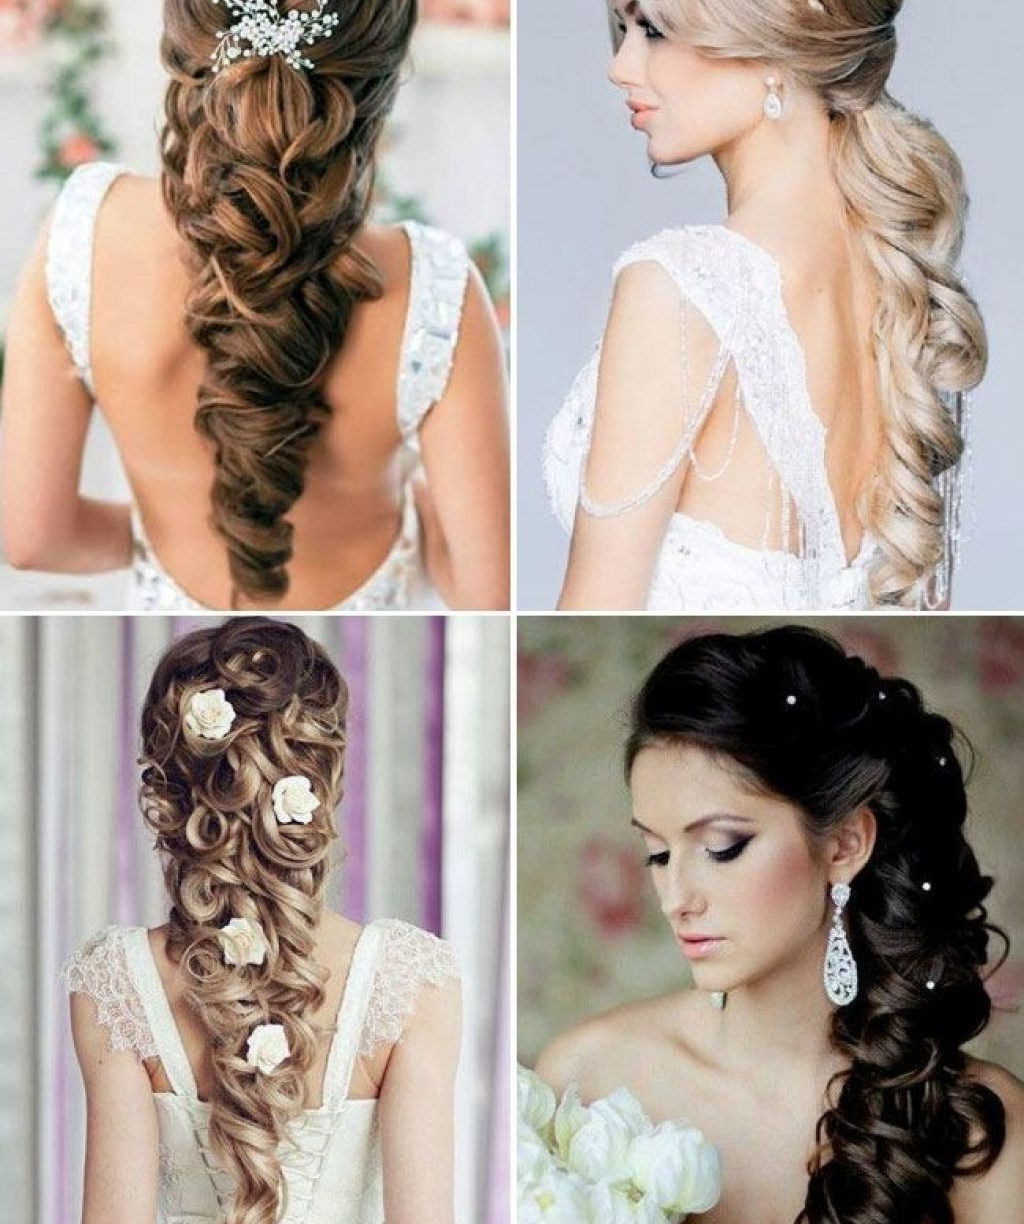 2017 Quick Wedding Hairstyles For Long Hair With Homecoming Hairstyles For Medium Length Hair Hairstyle Fodo (View 3 of 15)